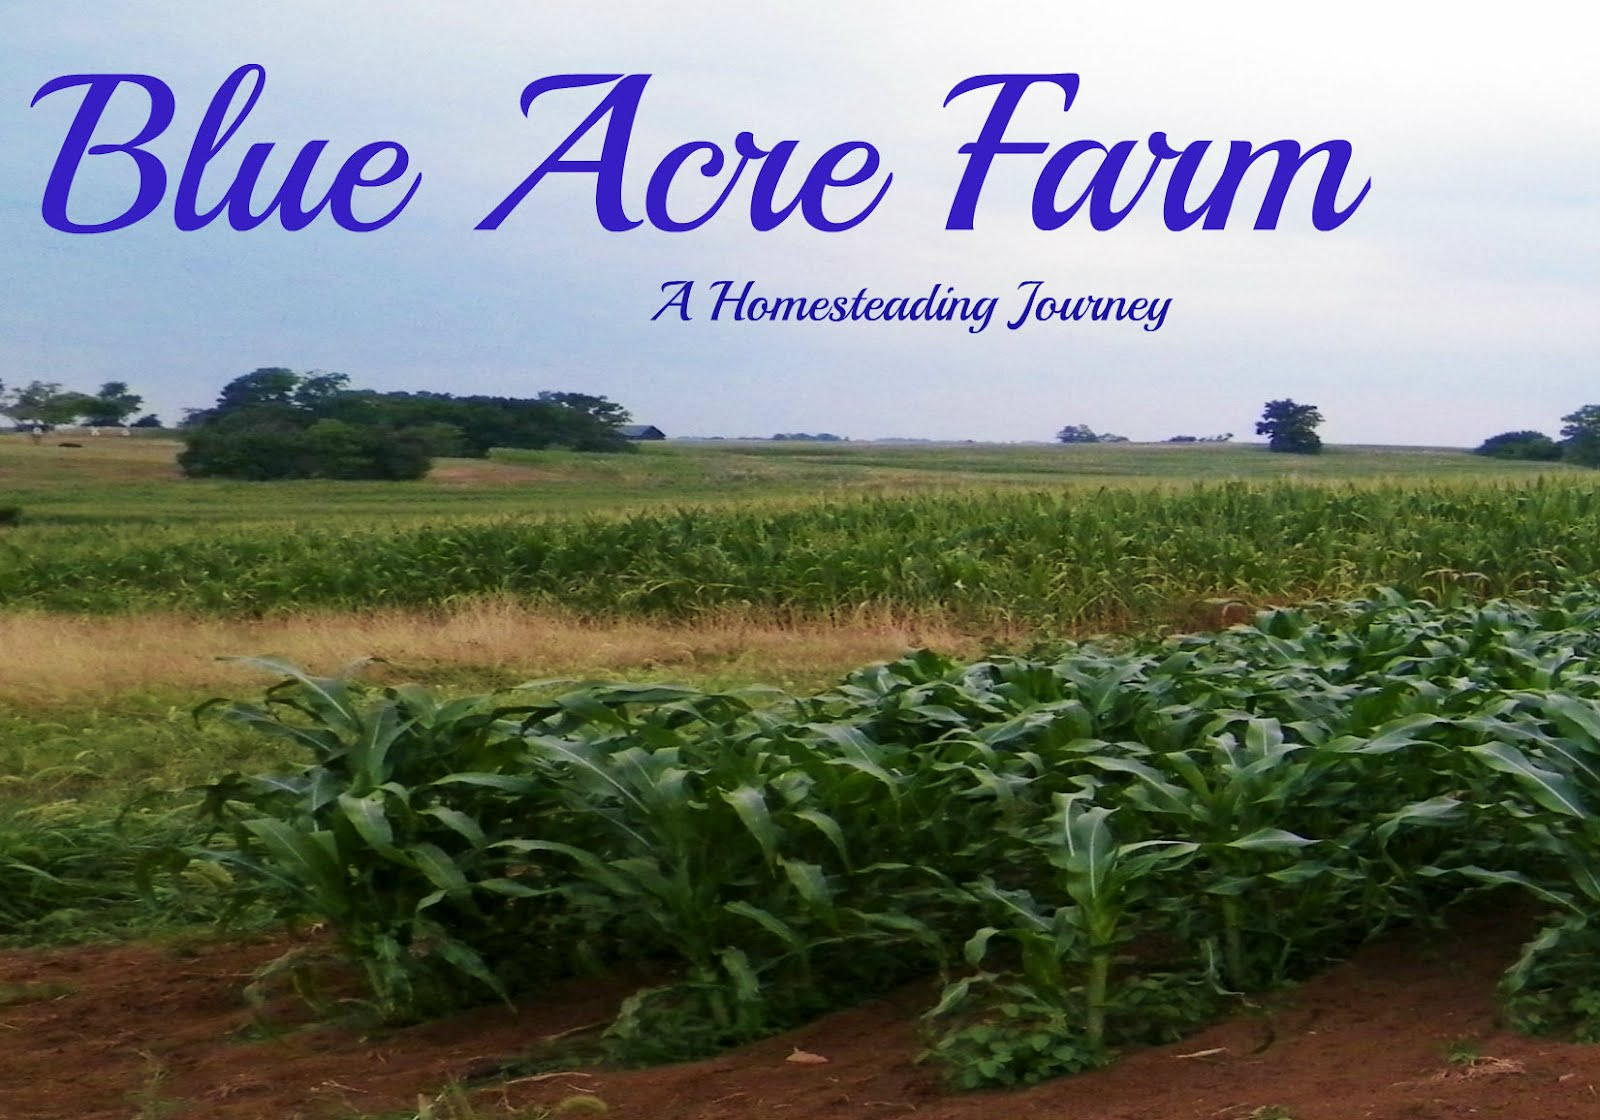 Blue Acre Farm